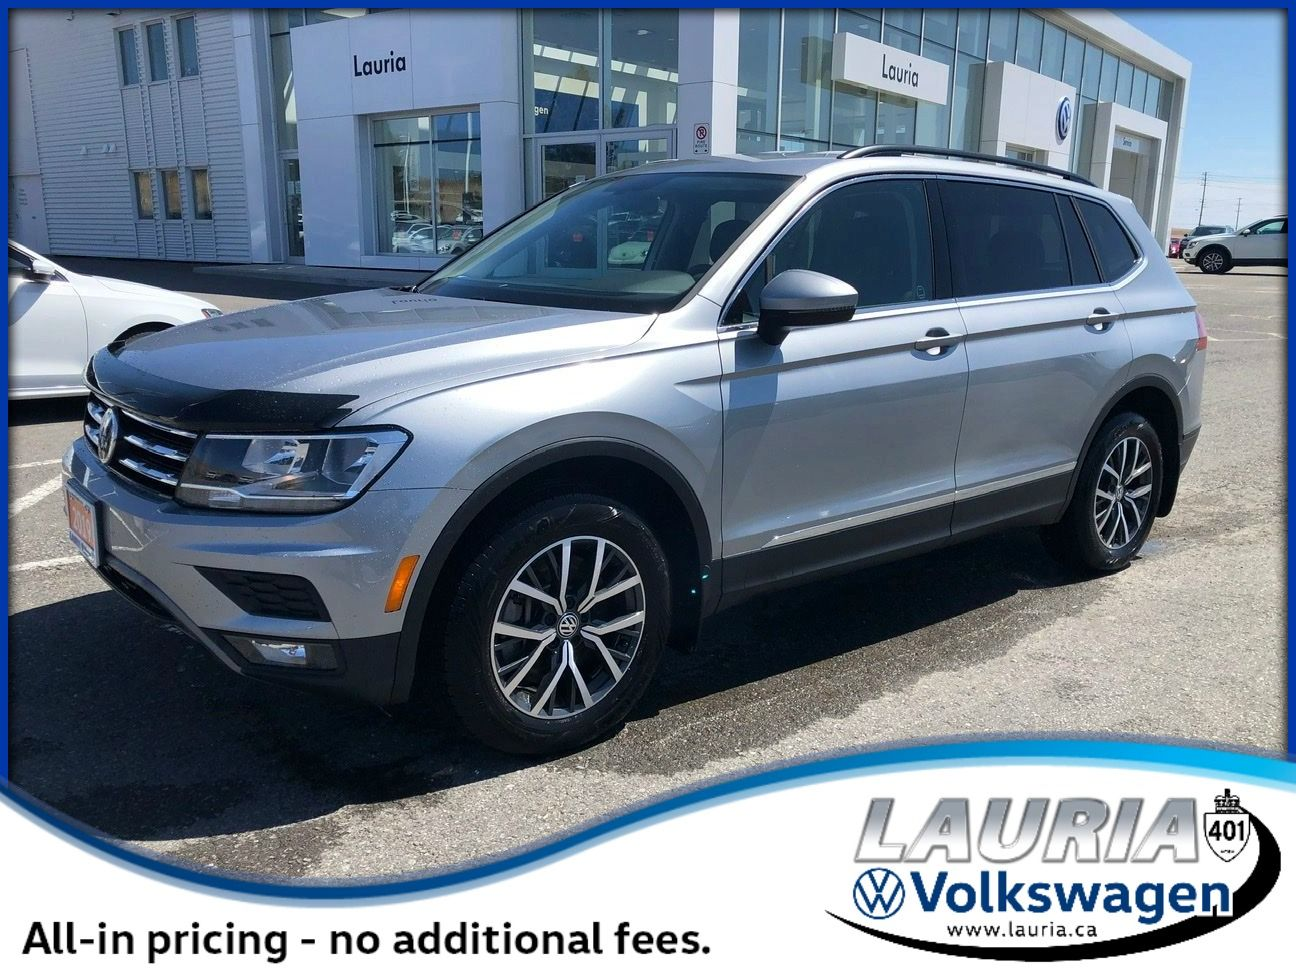 Certified Pre-Owned 2019 Volkswagen Tiguan 2.0T Comfortline Auto - ULTRA LOW KMS!